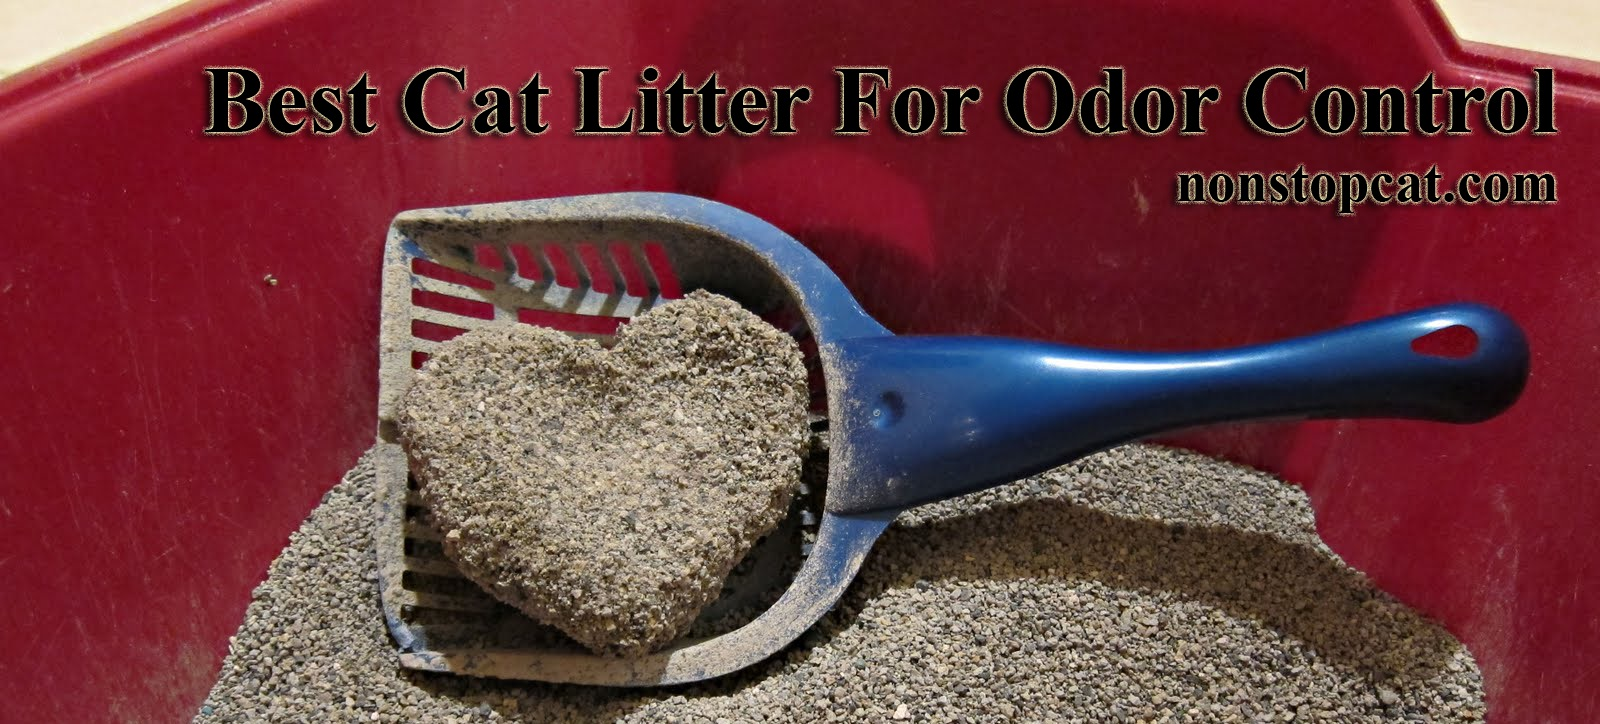 Best-Cat-Litter-For-Odor-Control